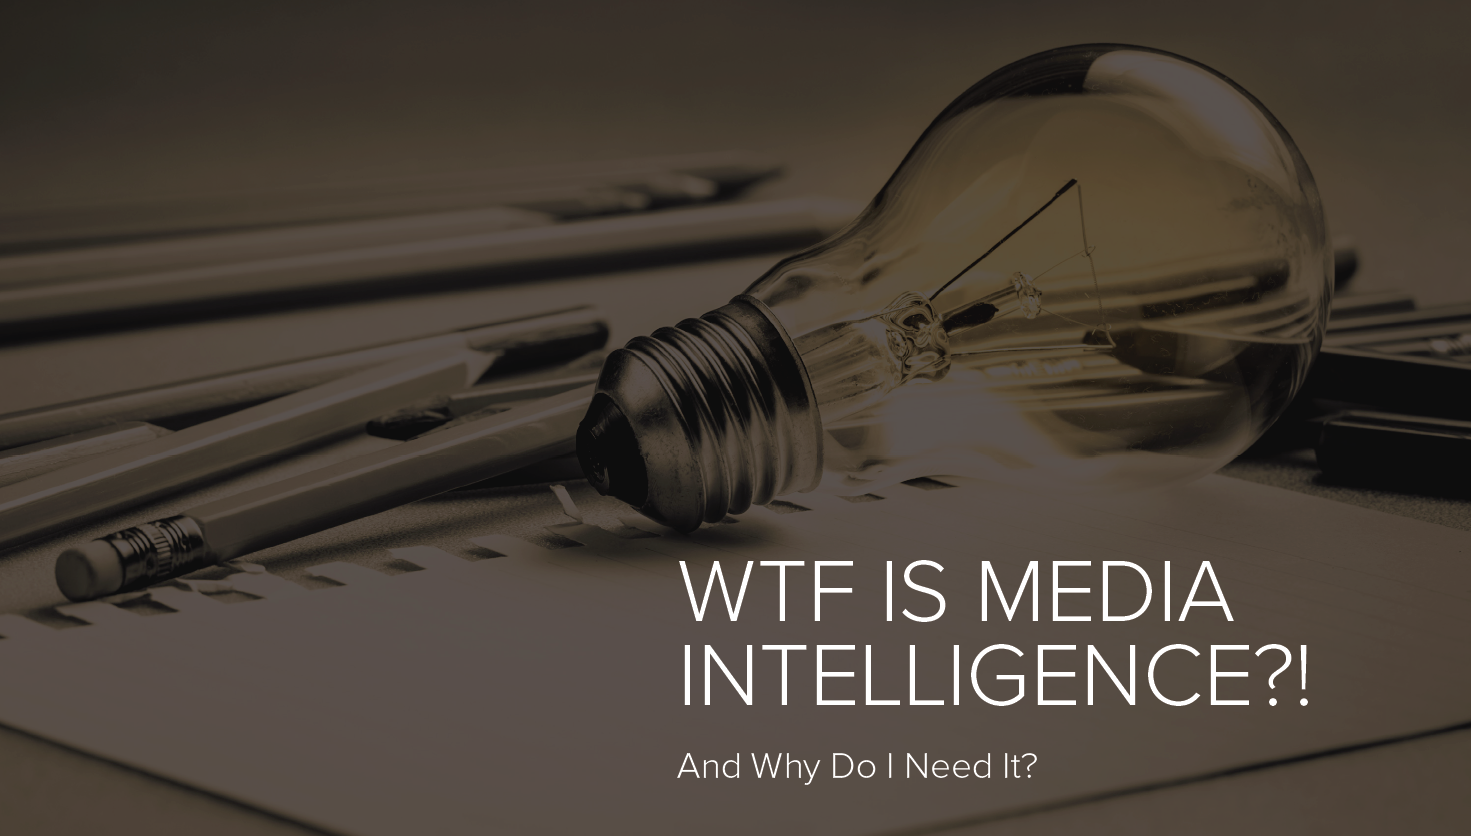 WTF is Media Intelligence!?